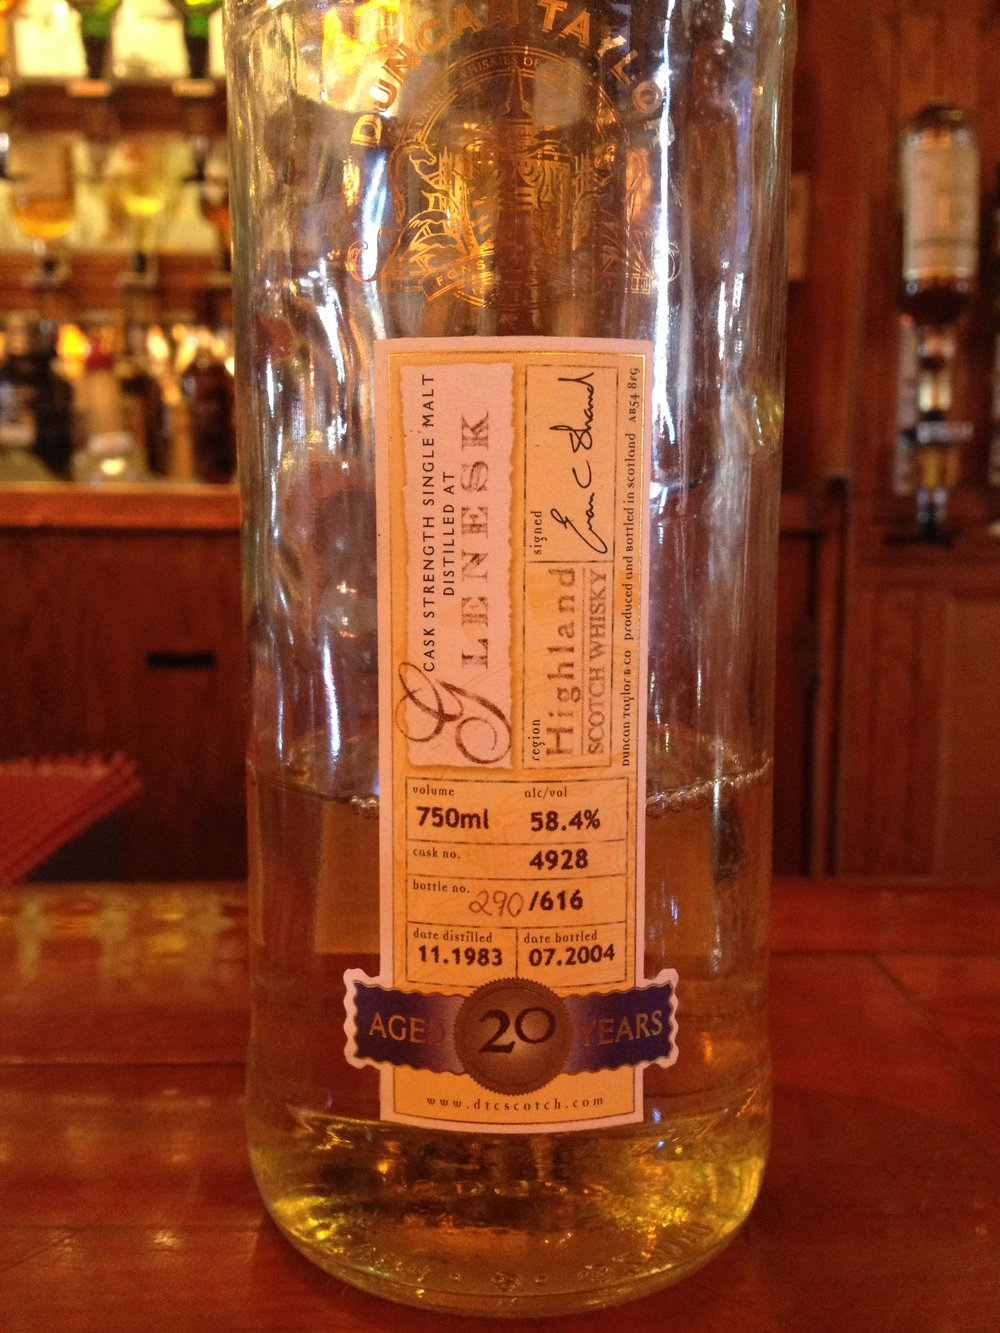 20 Year Old | 58.4% ABV - Distillery | Glenesk